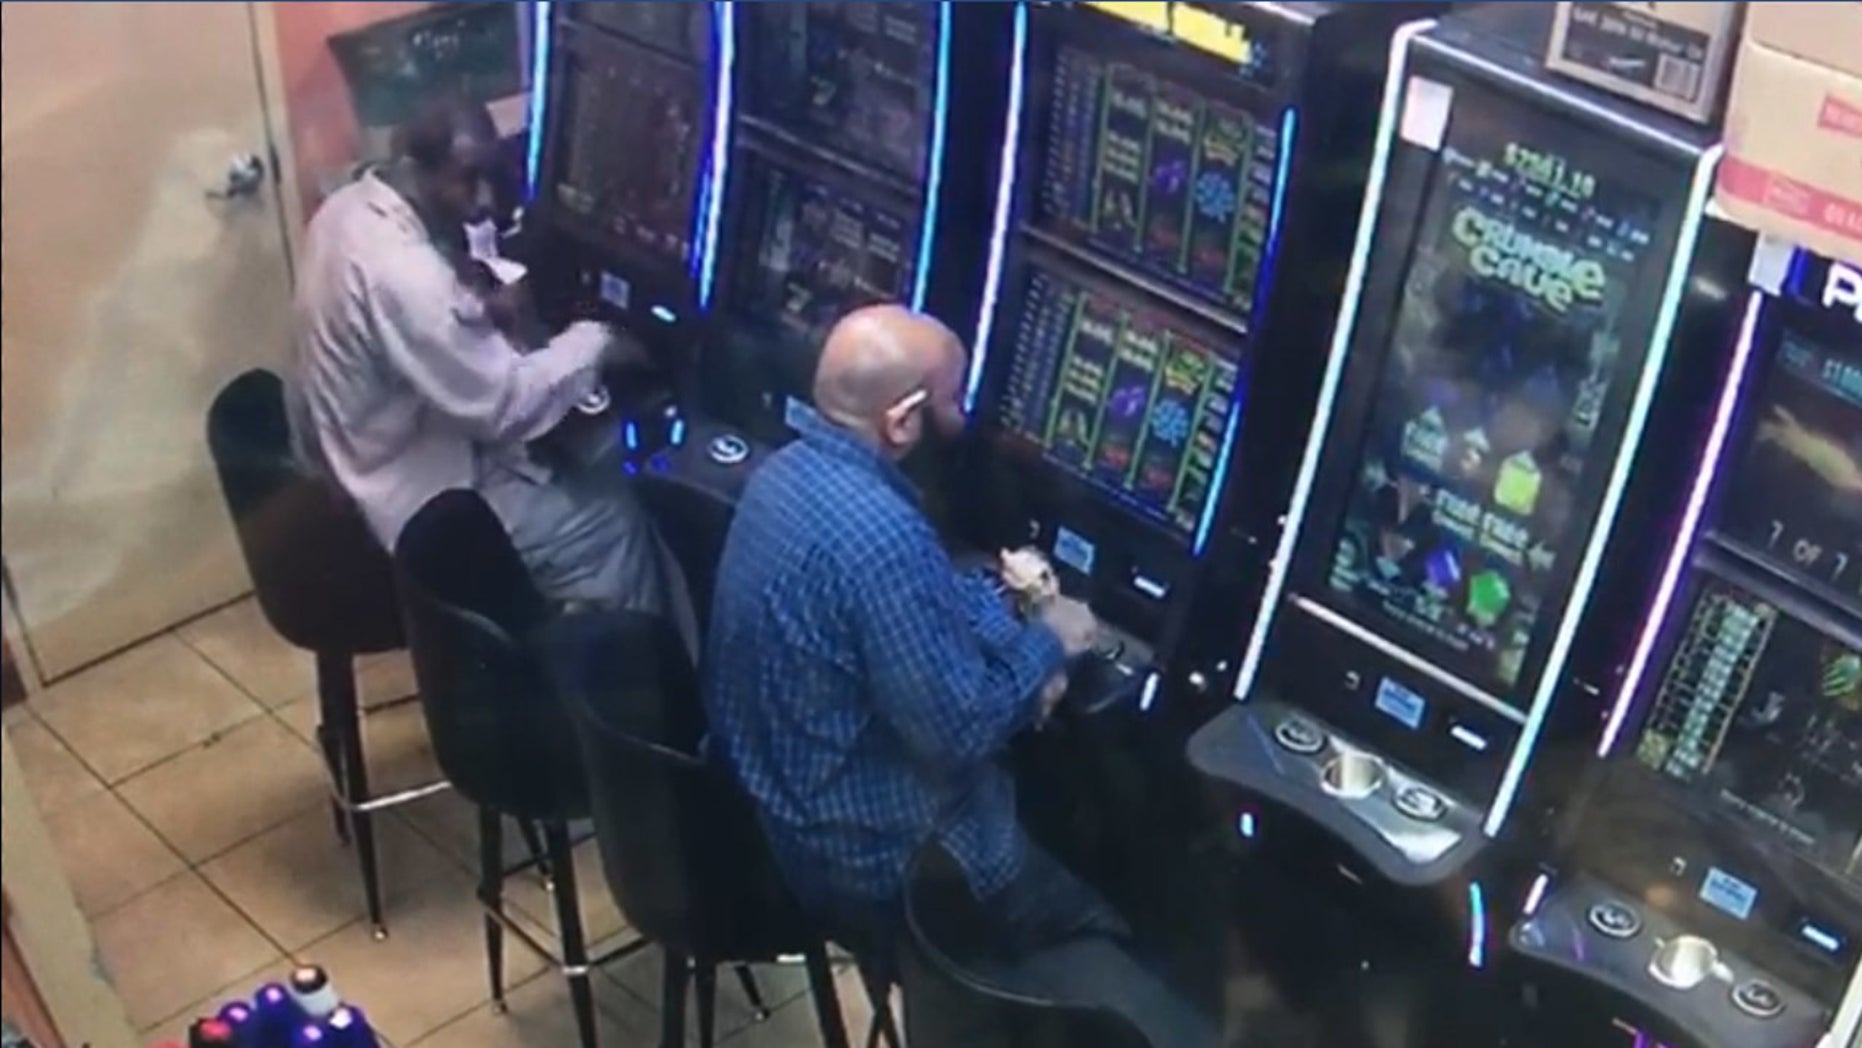 Westlake Legal Group ddd Suspect caught on camera stealing thousands from gambling machine, Atlanta cops say fox-news/us/crime fox news fnc/us fnc article 66891ec2-e307-5bae-8268-dd64f742a9c2